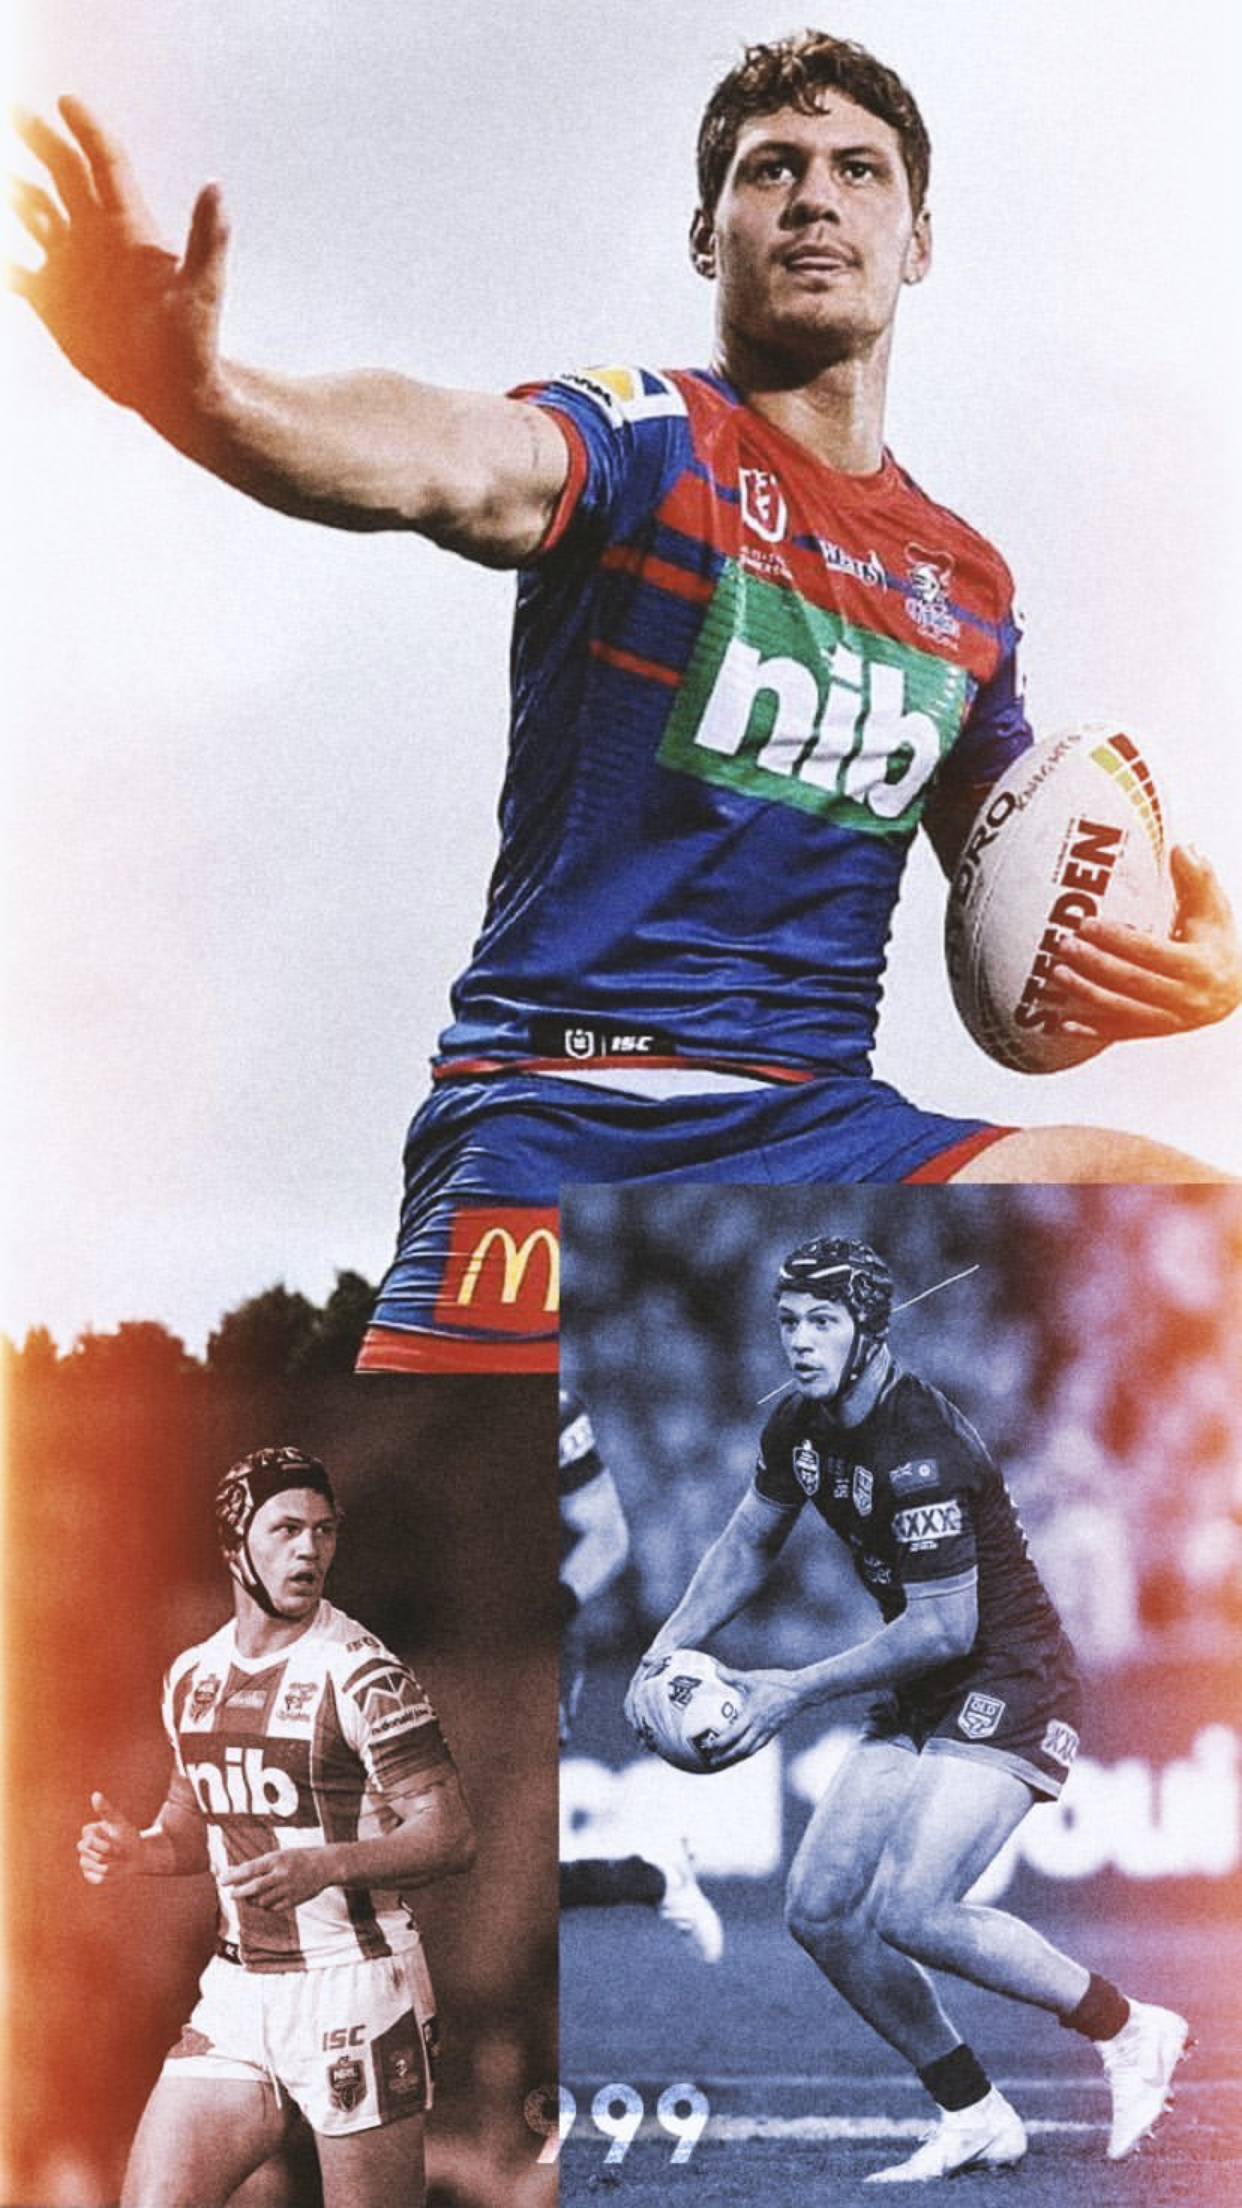 Pin By Kay1ah On Kalyn Ponga Rugby League Newcastle Knights Nrl